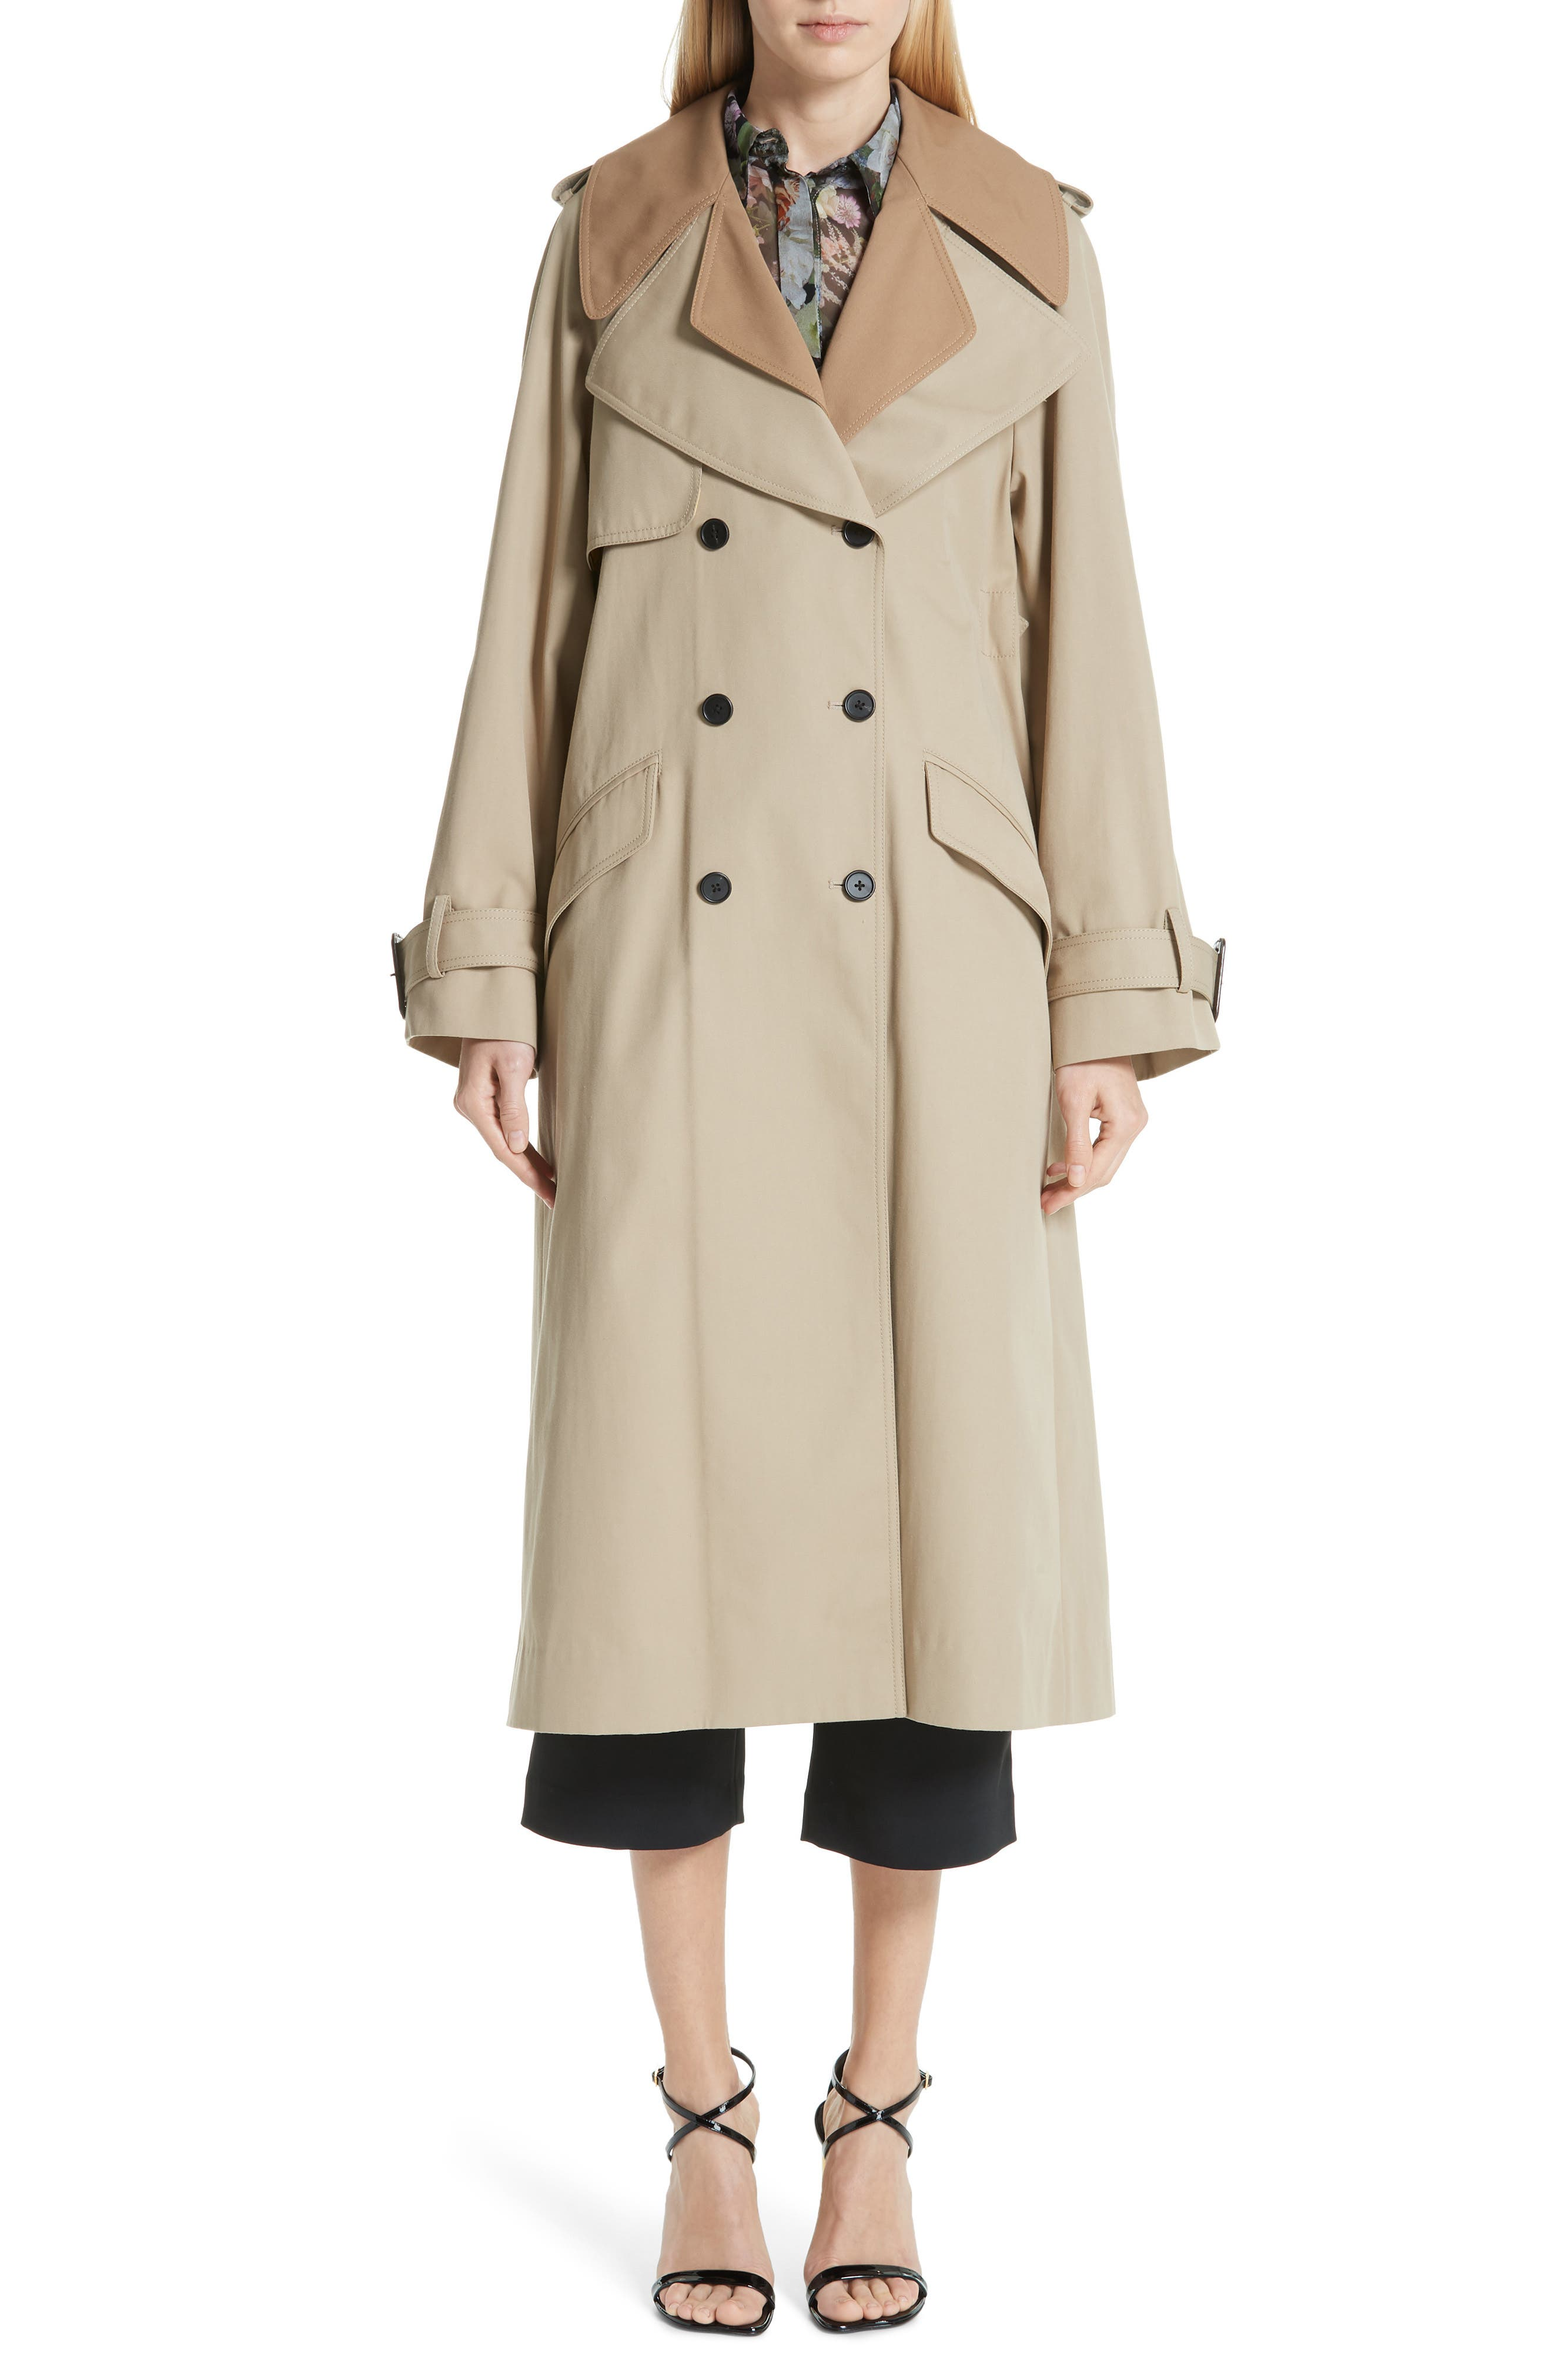 Trench Coat with Vest & Removable Fringe,                             Alternate thumbnail 8, color,                             KHAKI/ TAN